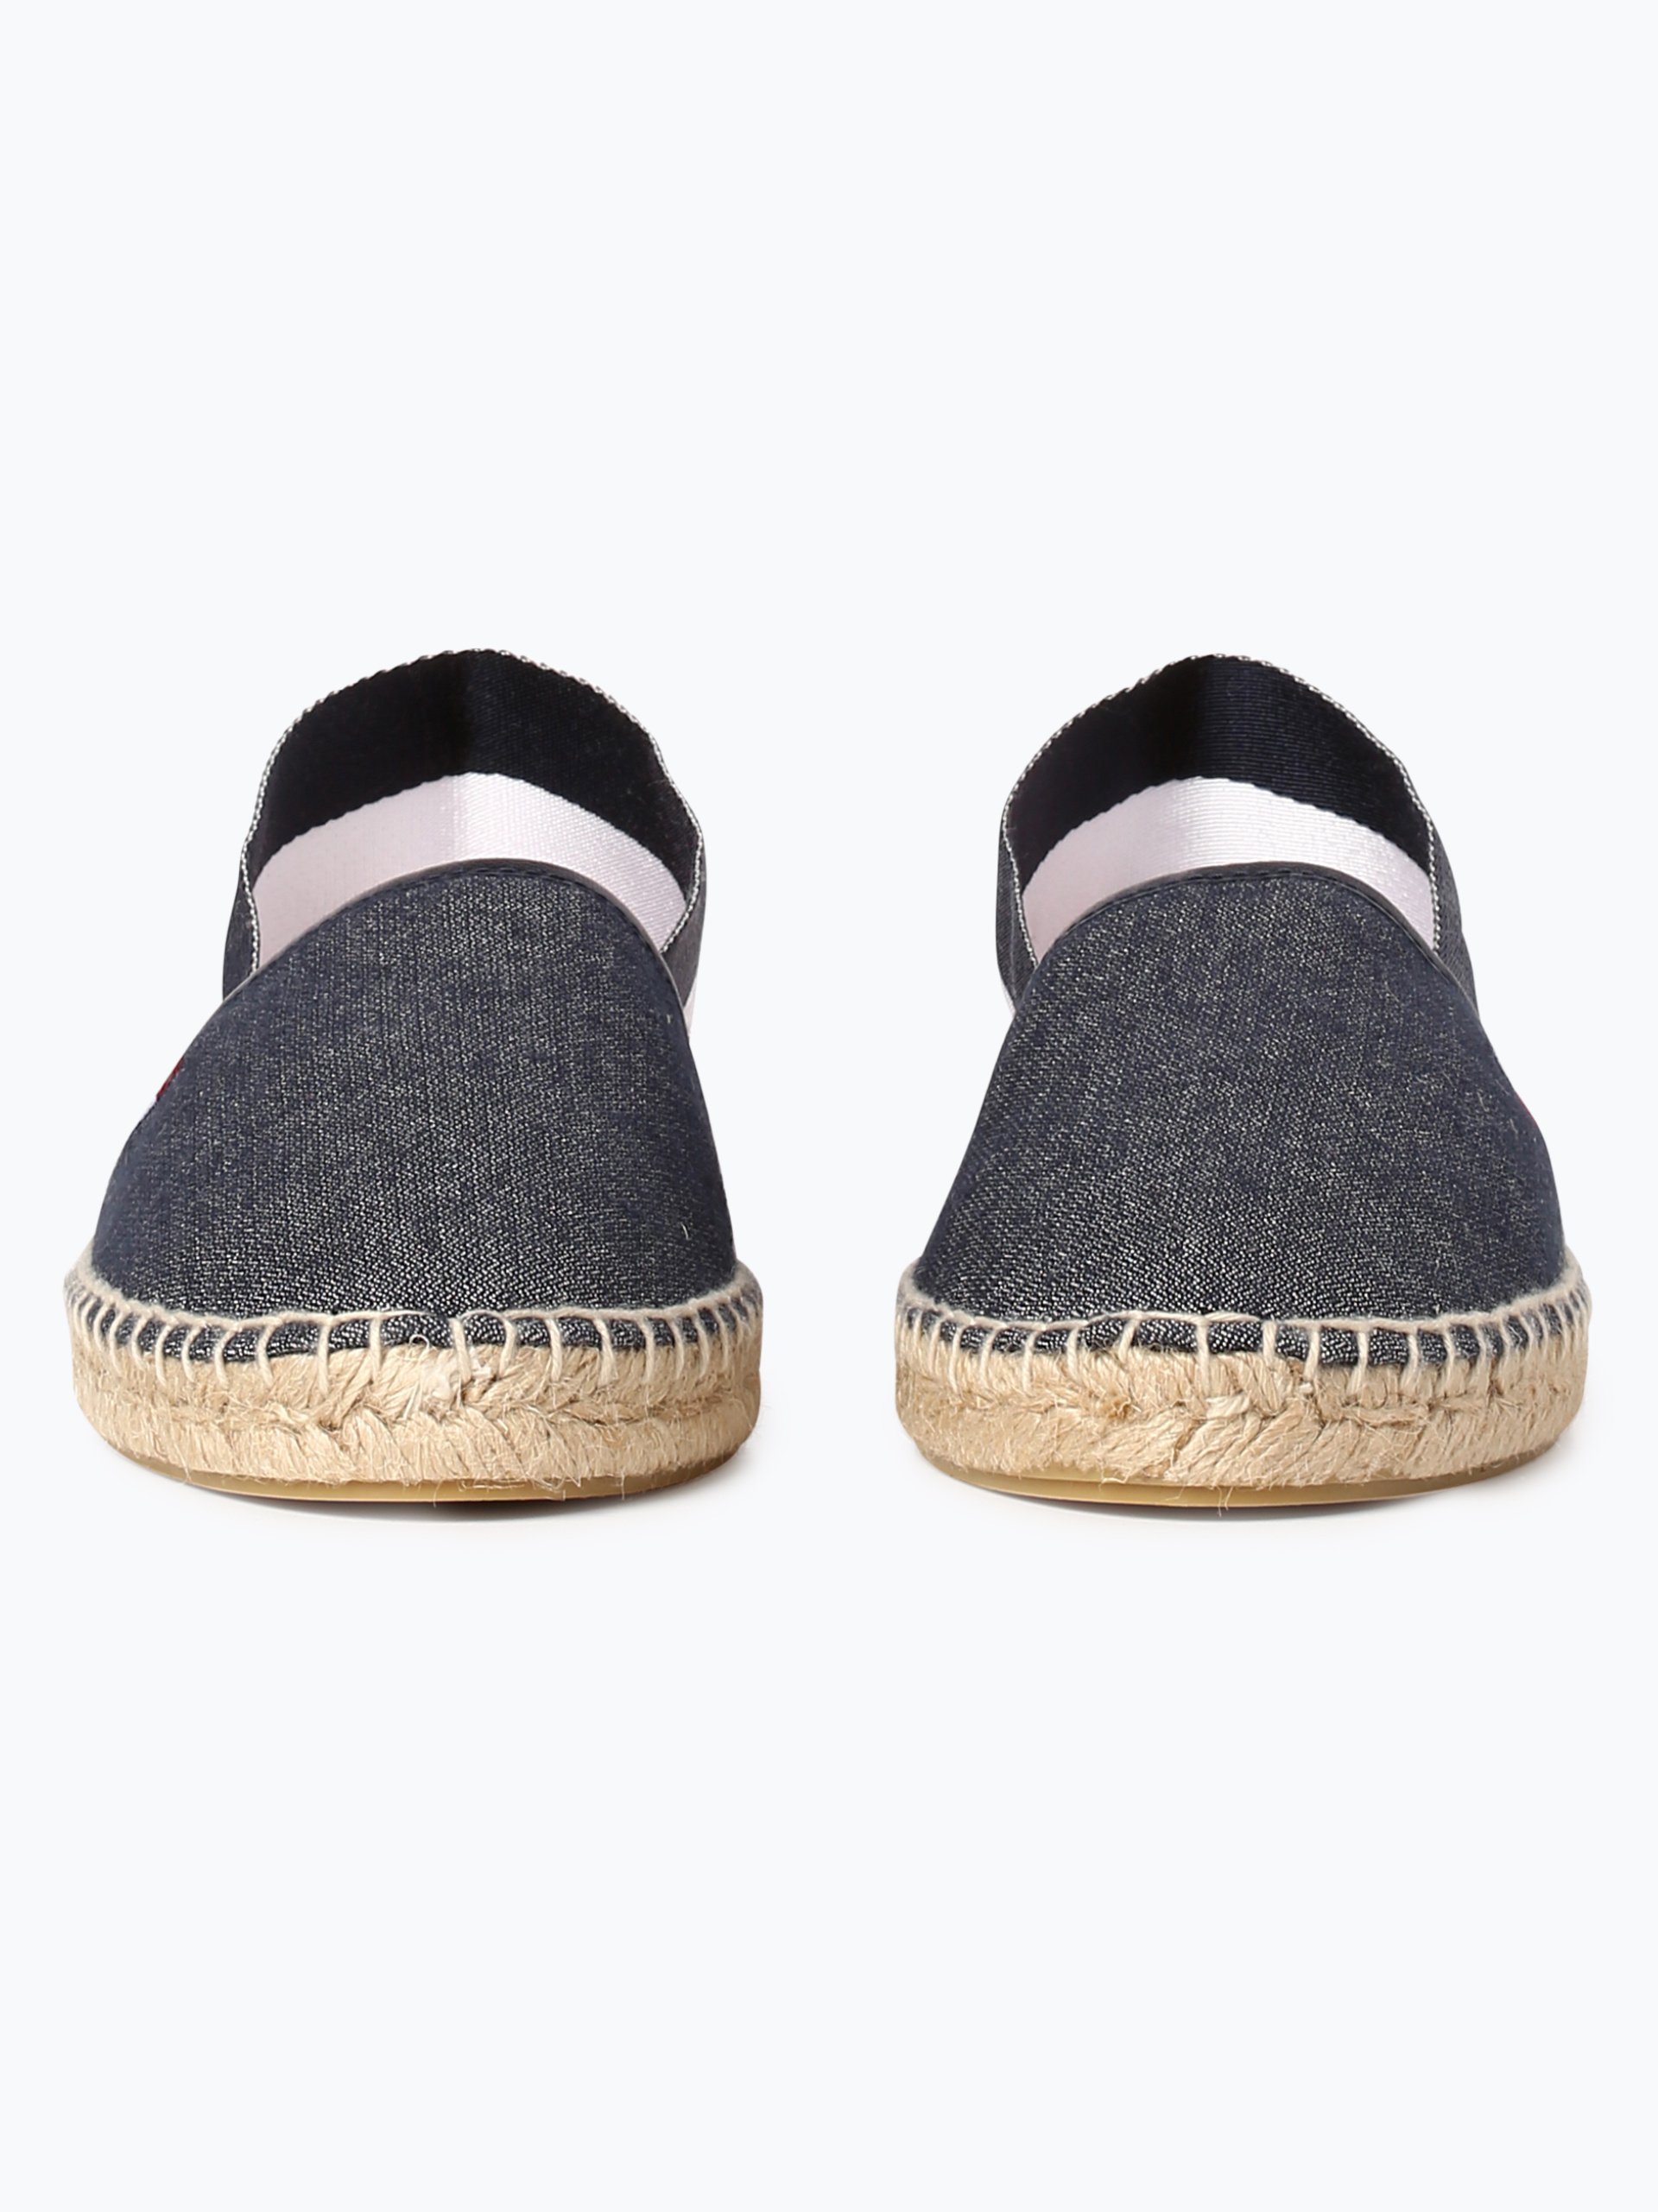 tommy jeans damen espadrilles mit leder anteil marine uni online kaufen peek und cloppenburg de. Black Bedroom Furniture Sets. Home Design Ideas